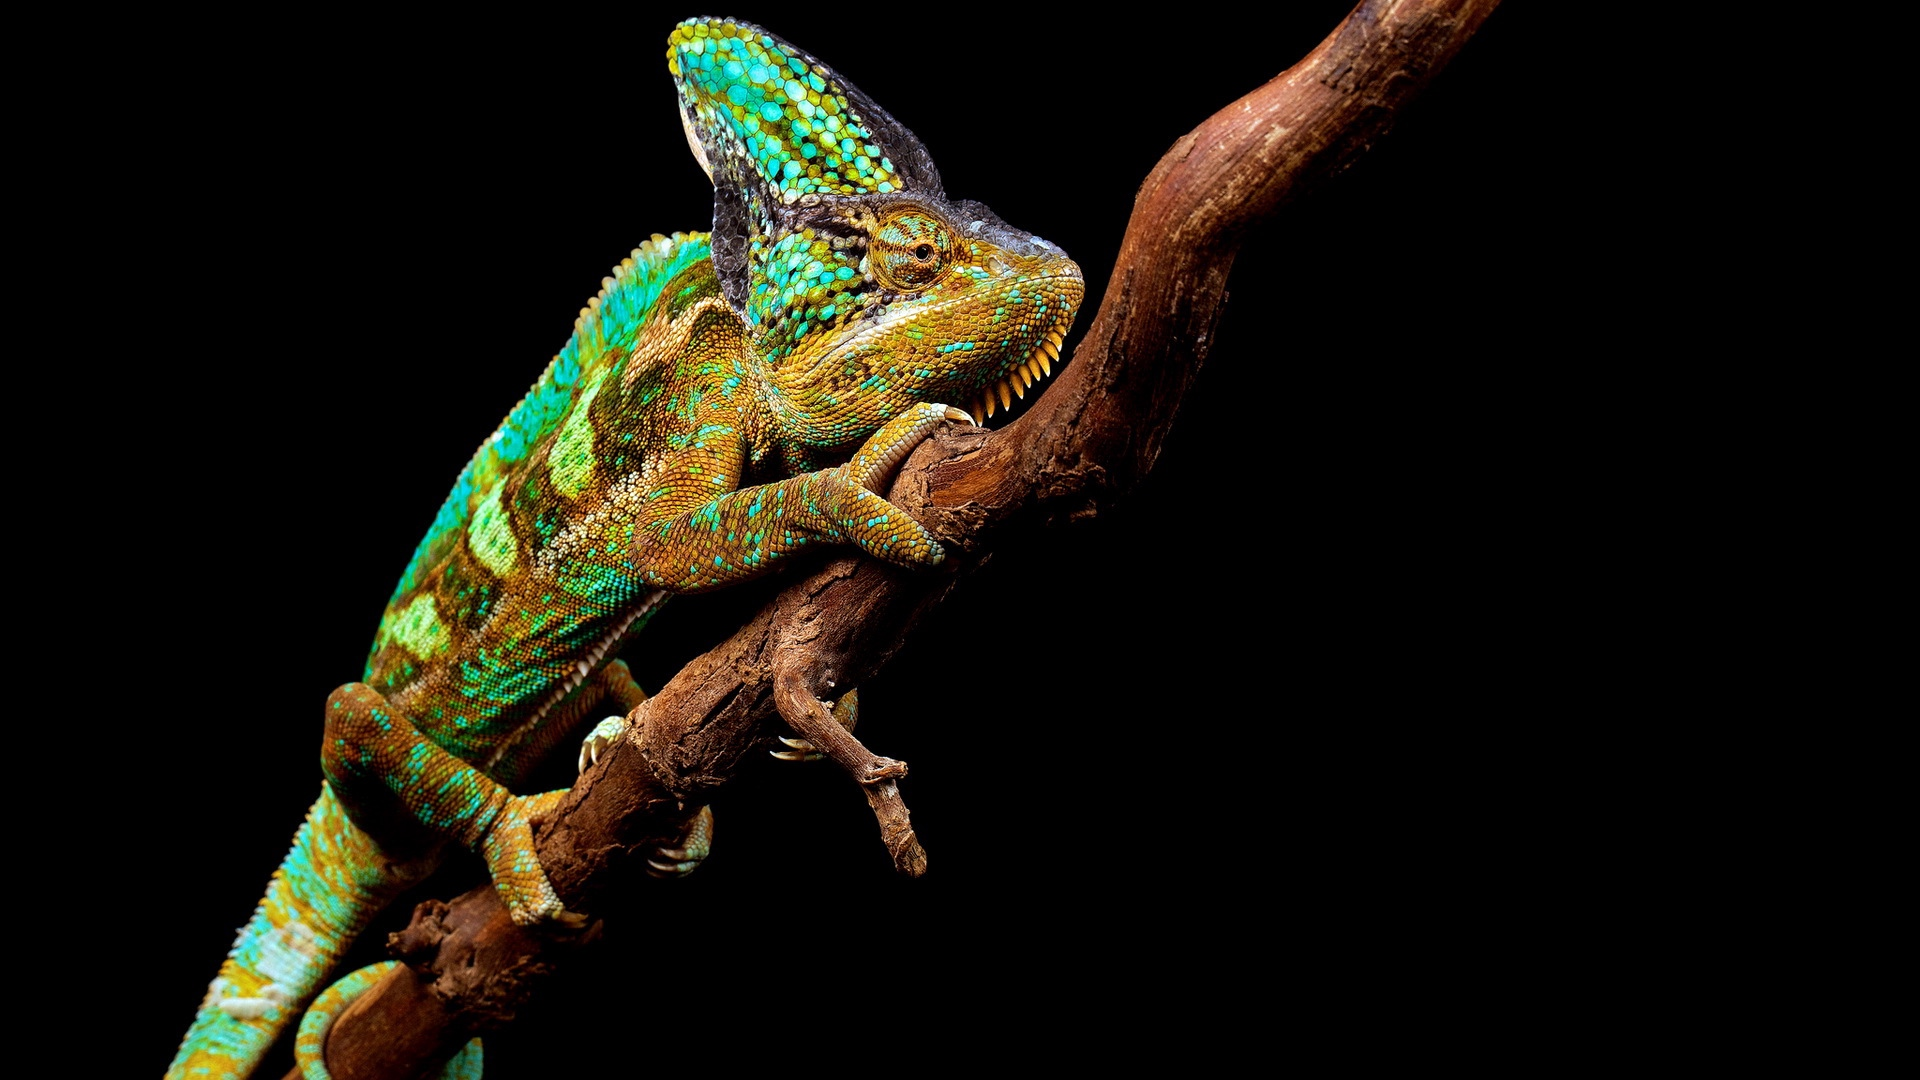 Download wallpapers 1920x1080 chameleon, reptile, branch full hd